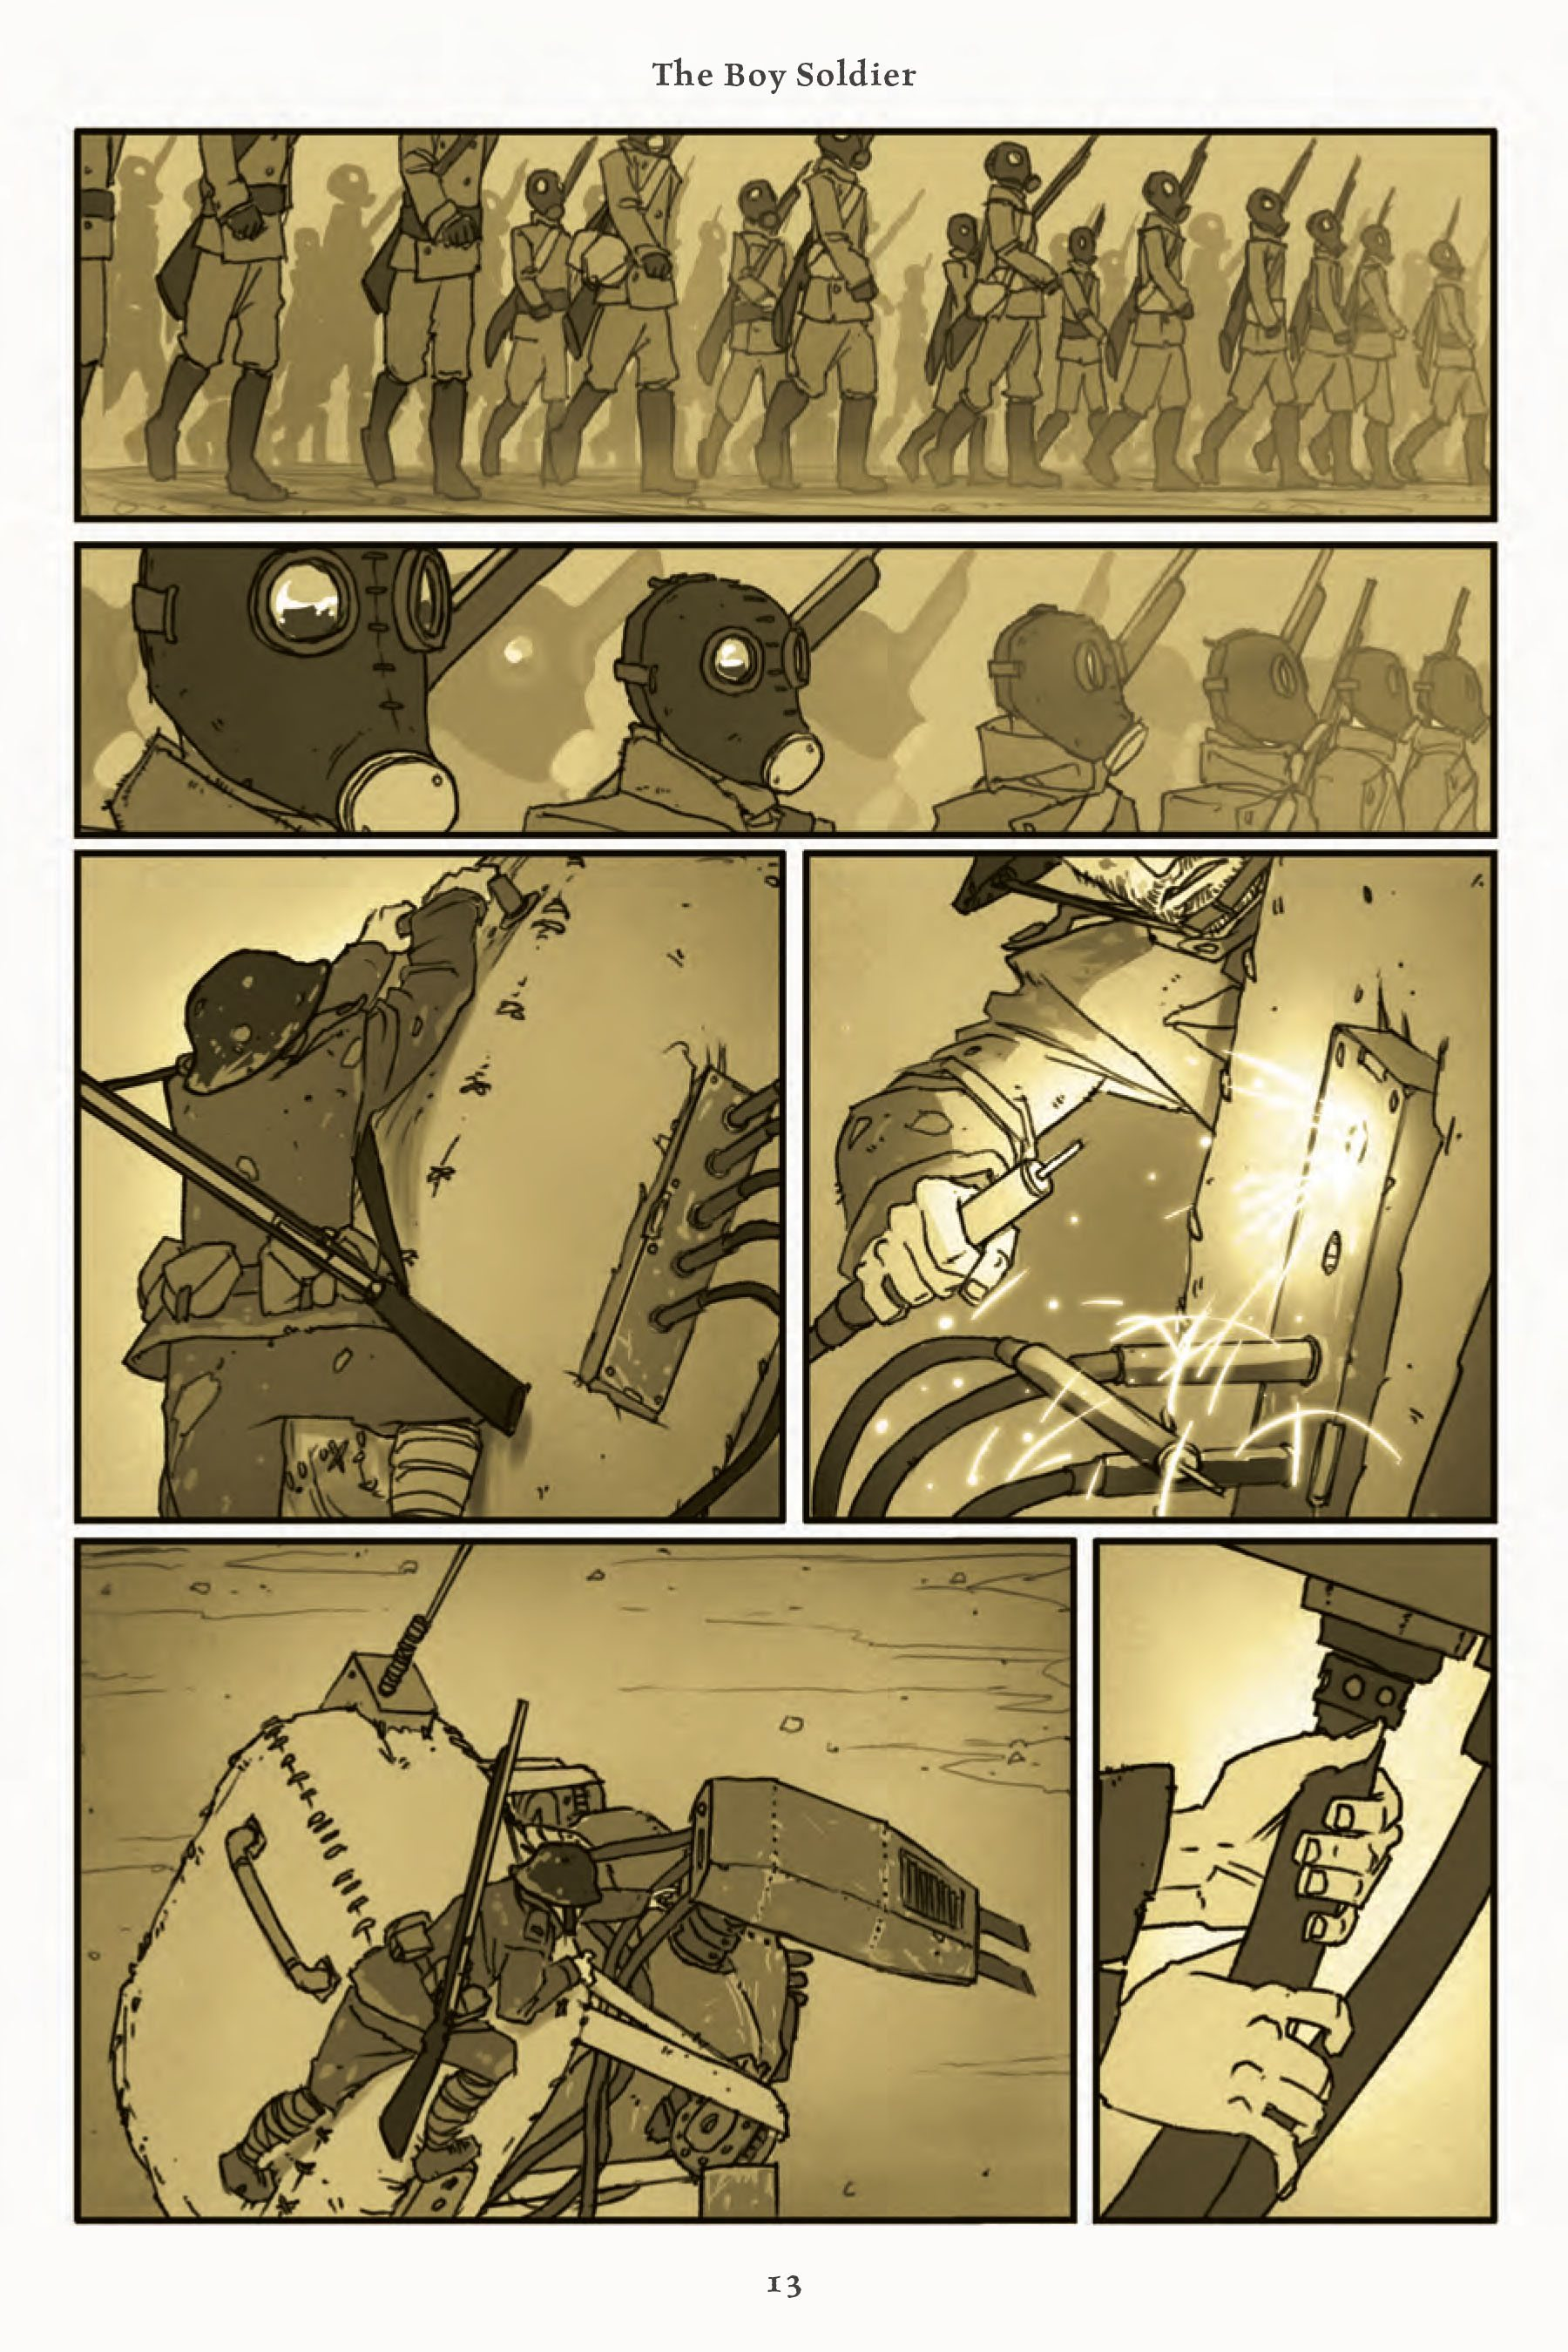 Rust_The_Boy_Soldier_TP_Page_13